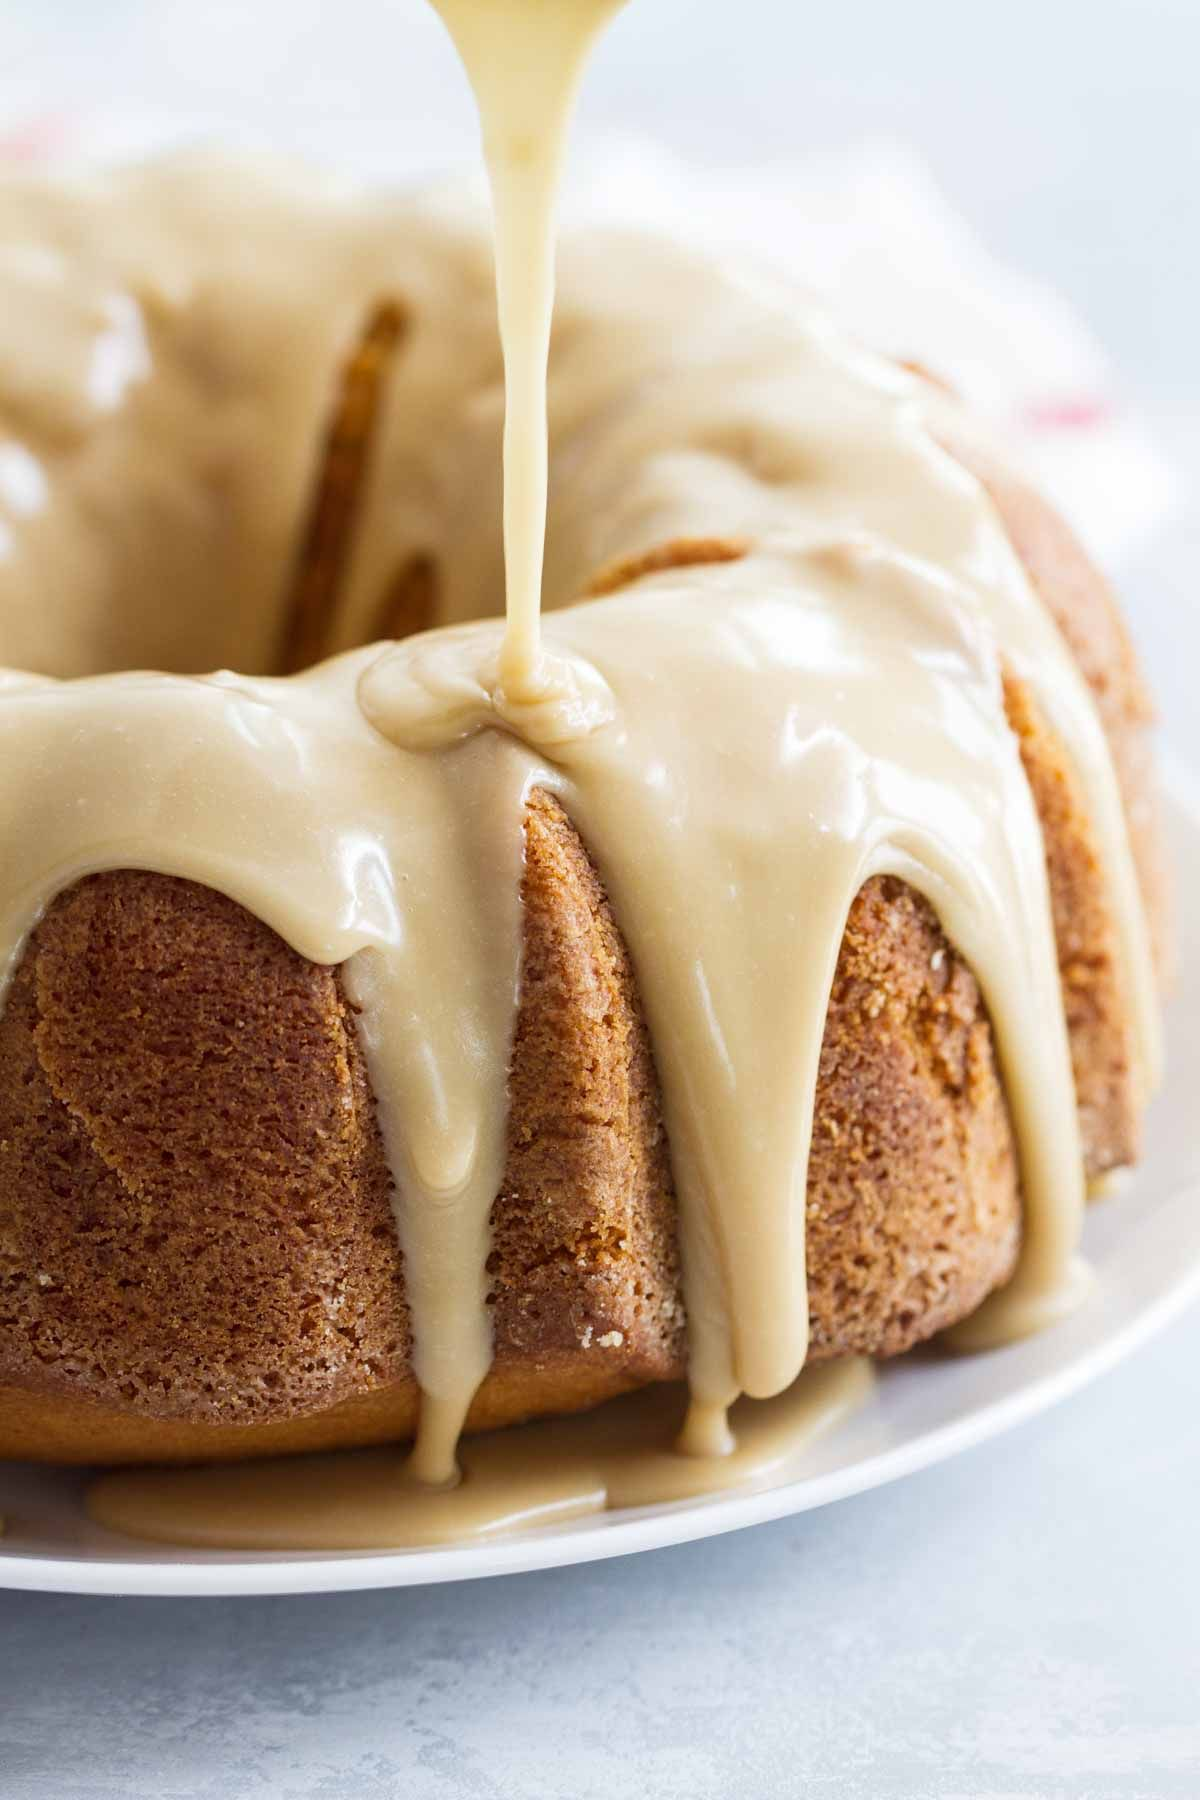 Buttermilk Pound Cake With Caramel Icing Recipe Buttermilk Recipes Buttermilk Pound Cake Pound Cake Recipes